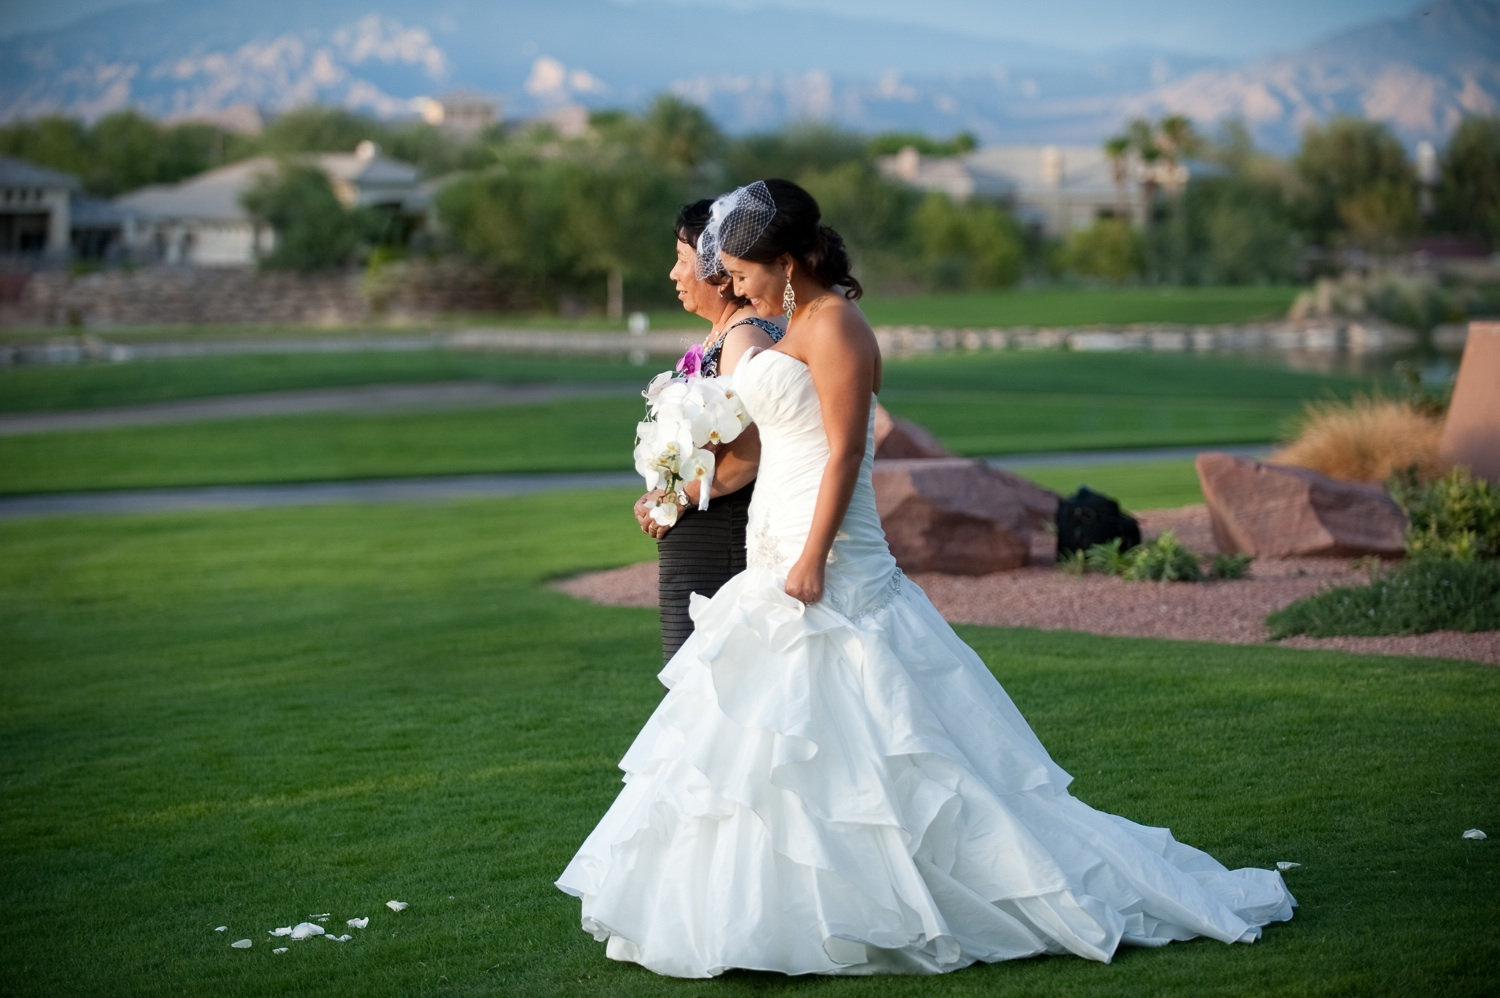 Real-weddings-las-vegas-outdoor-ceremony-white-wedding-dress.original